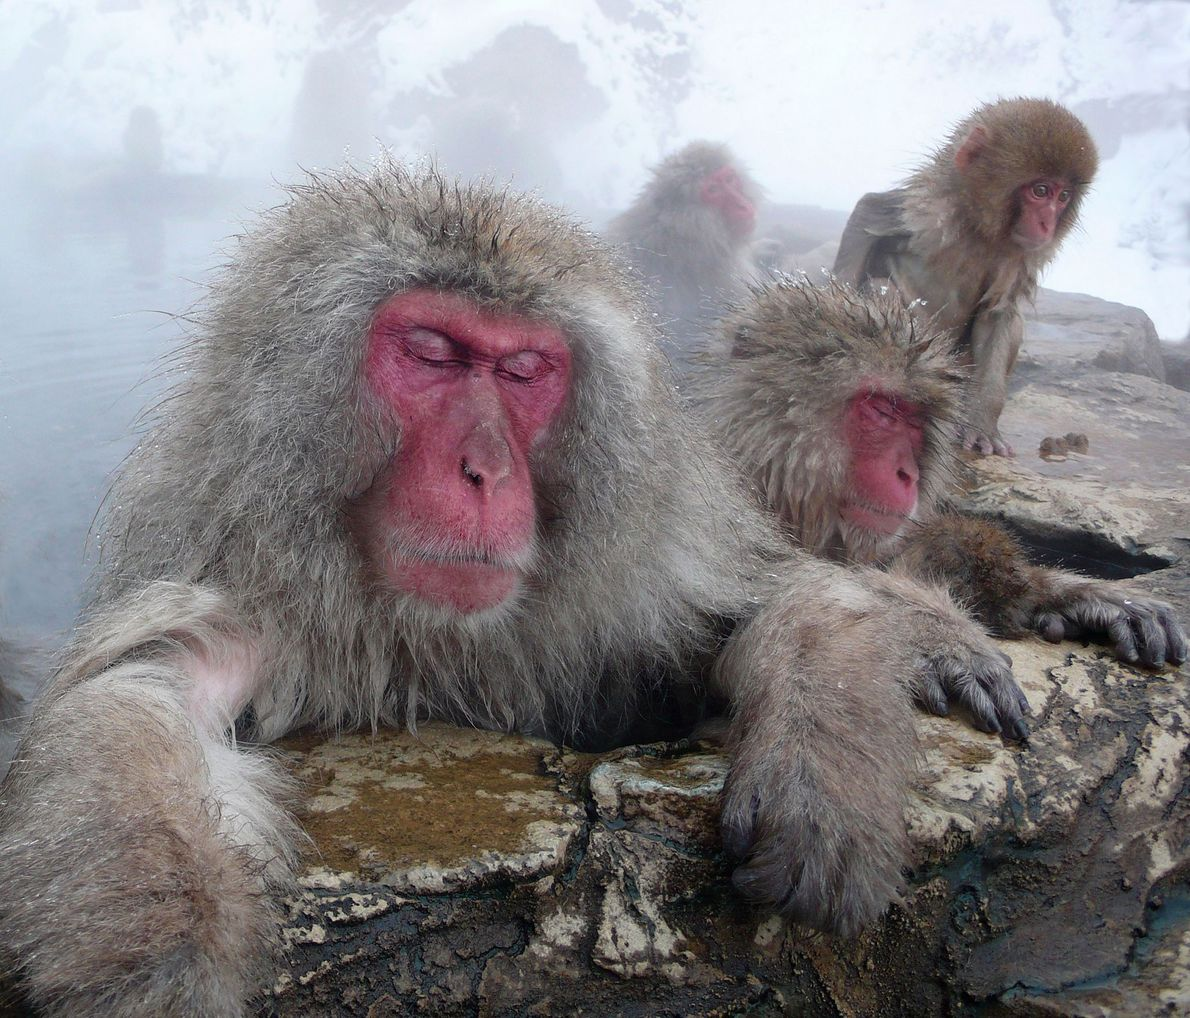 Japanese macaques take a rest in thermal hot springs in Nagano, Japan.